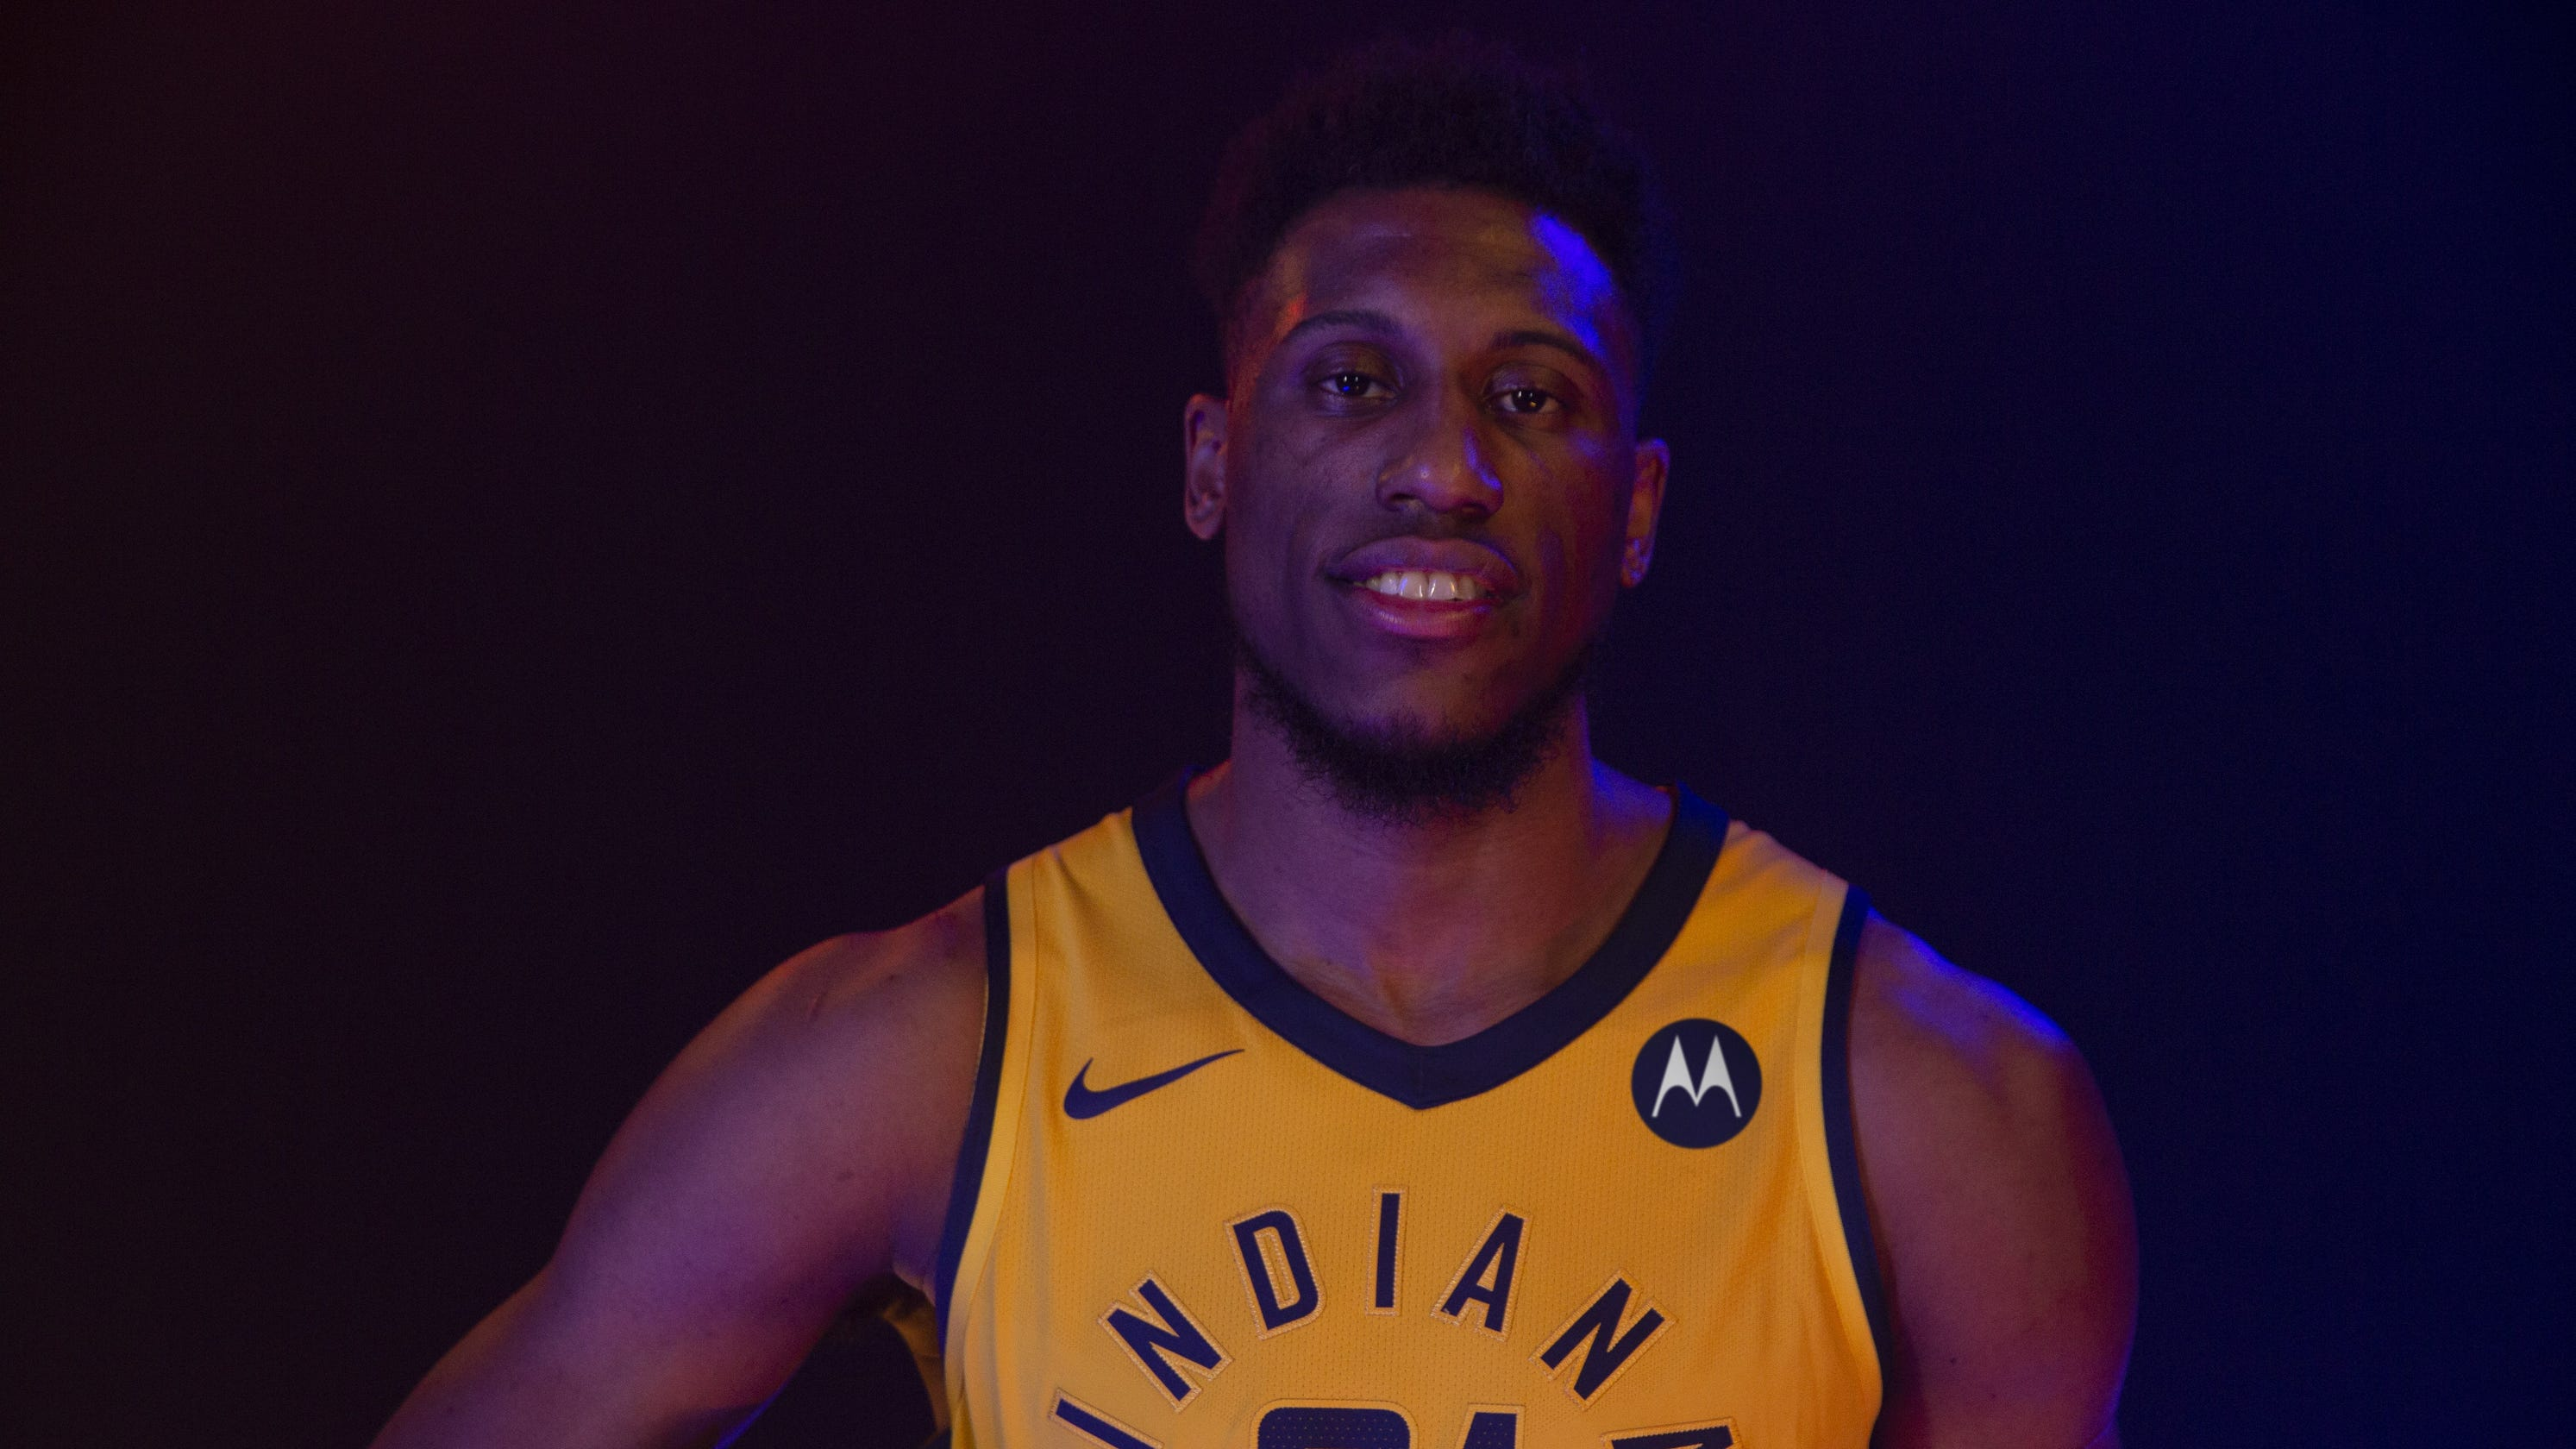 043b7d4978fd Indiana Pacers will debut Motorola logo patch on jerseys